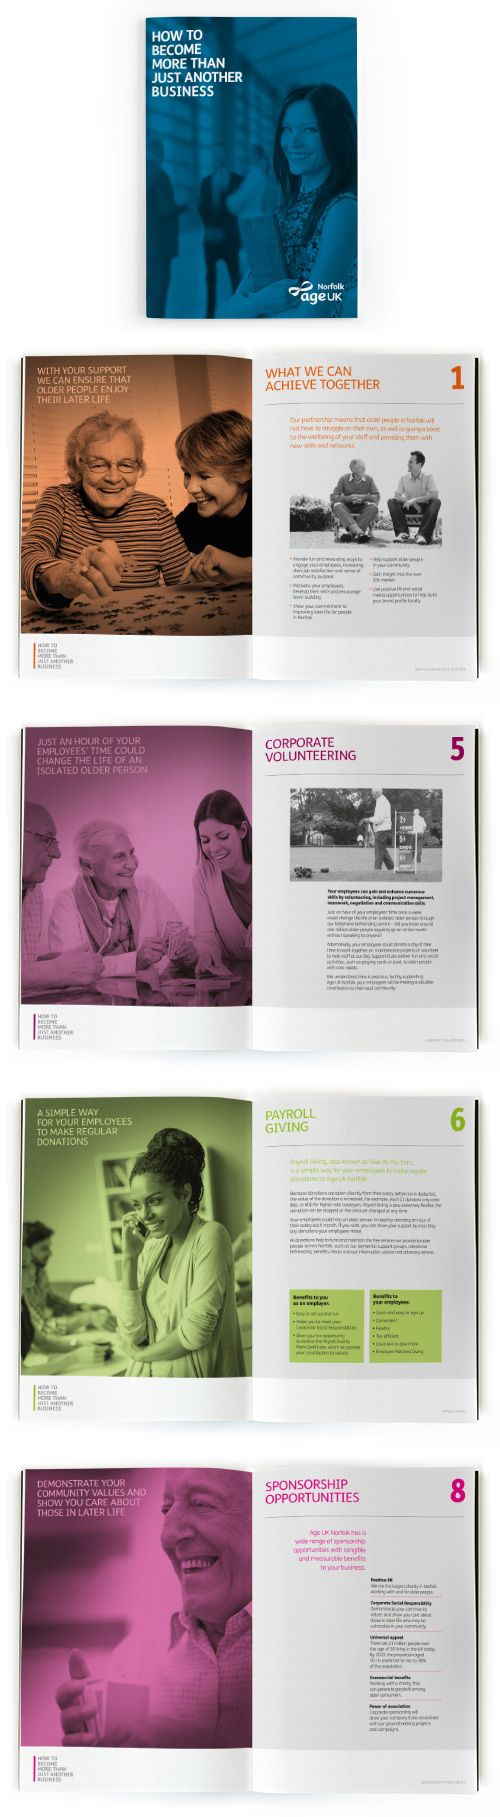 corporate fundraising brochure design age uk robot mascot - Booklet Design Ideas